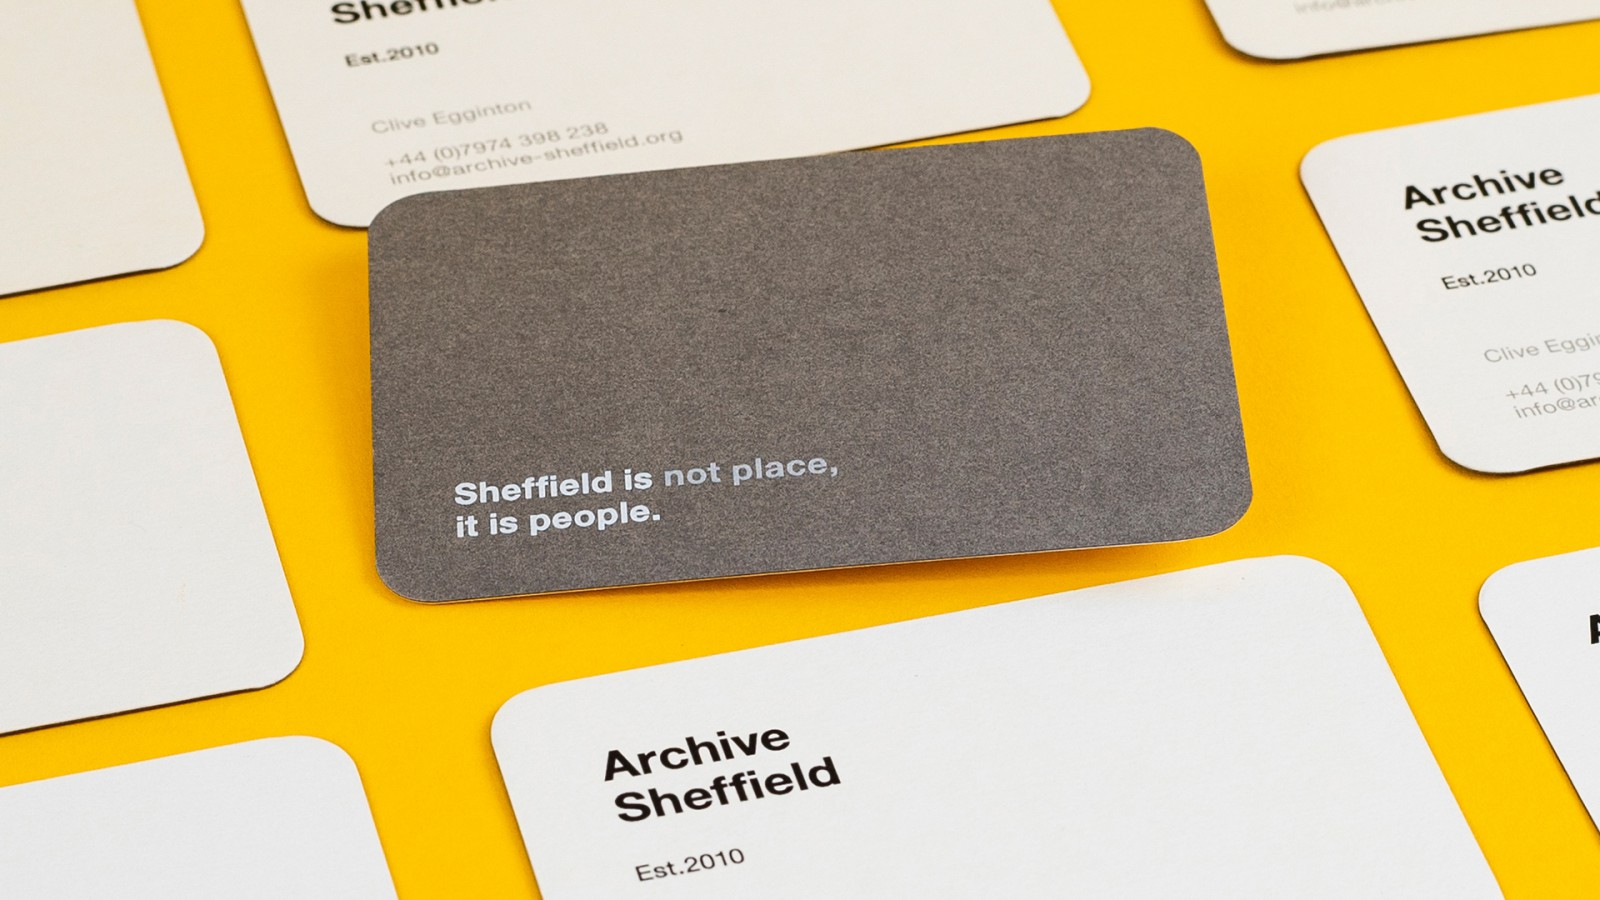 image for Archive Sheffield project